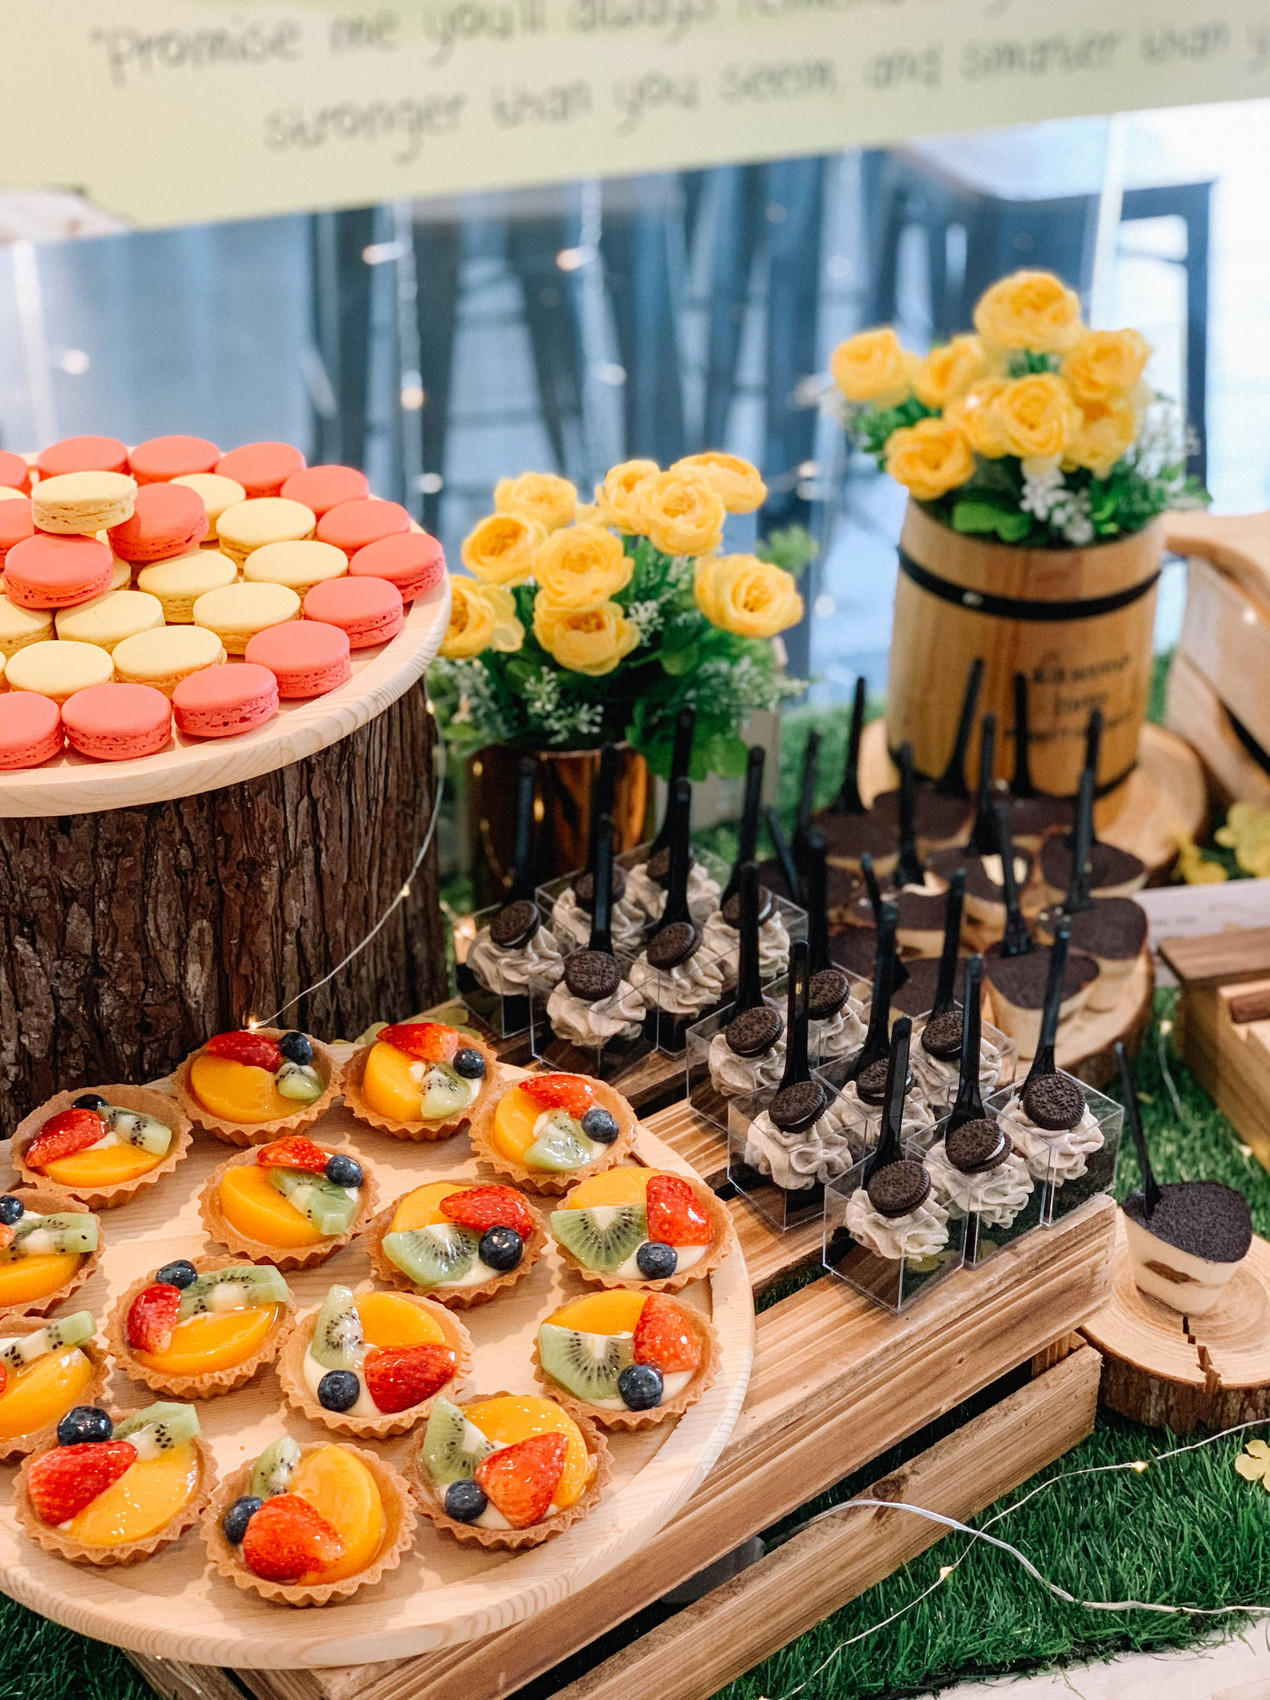 Fruit tarts, macarons, cookies and cream shooters by Divine Artisan